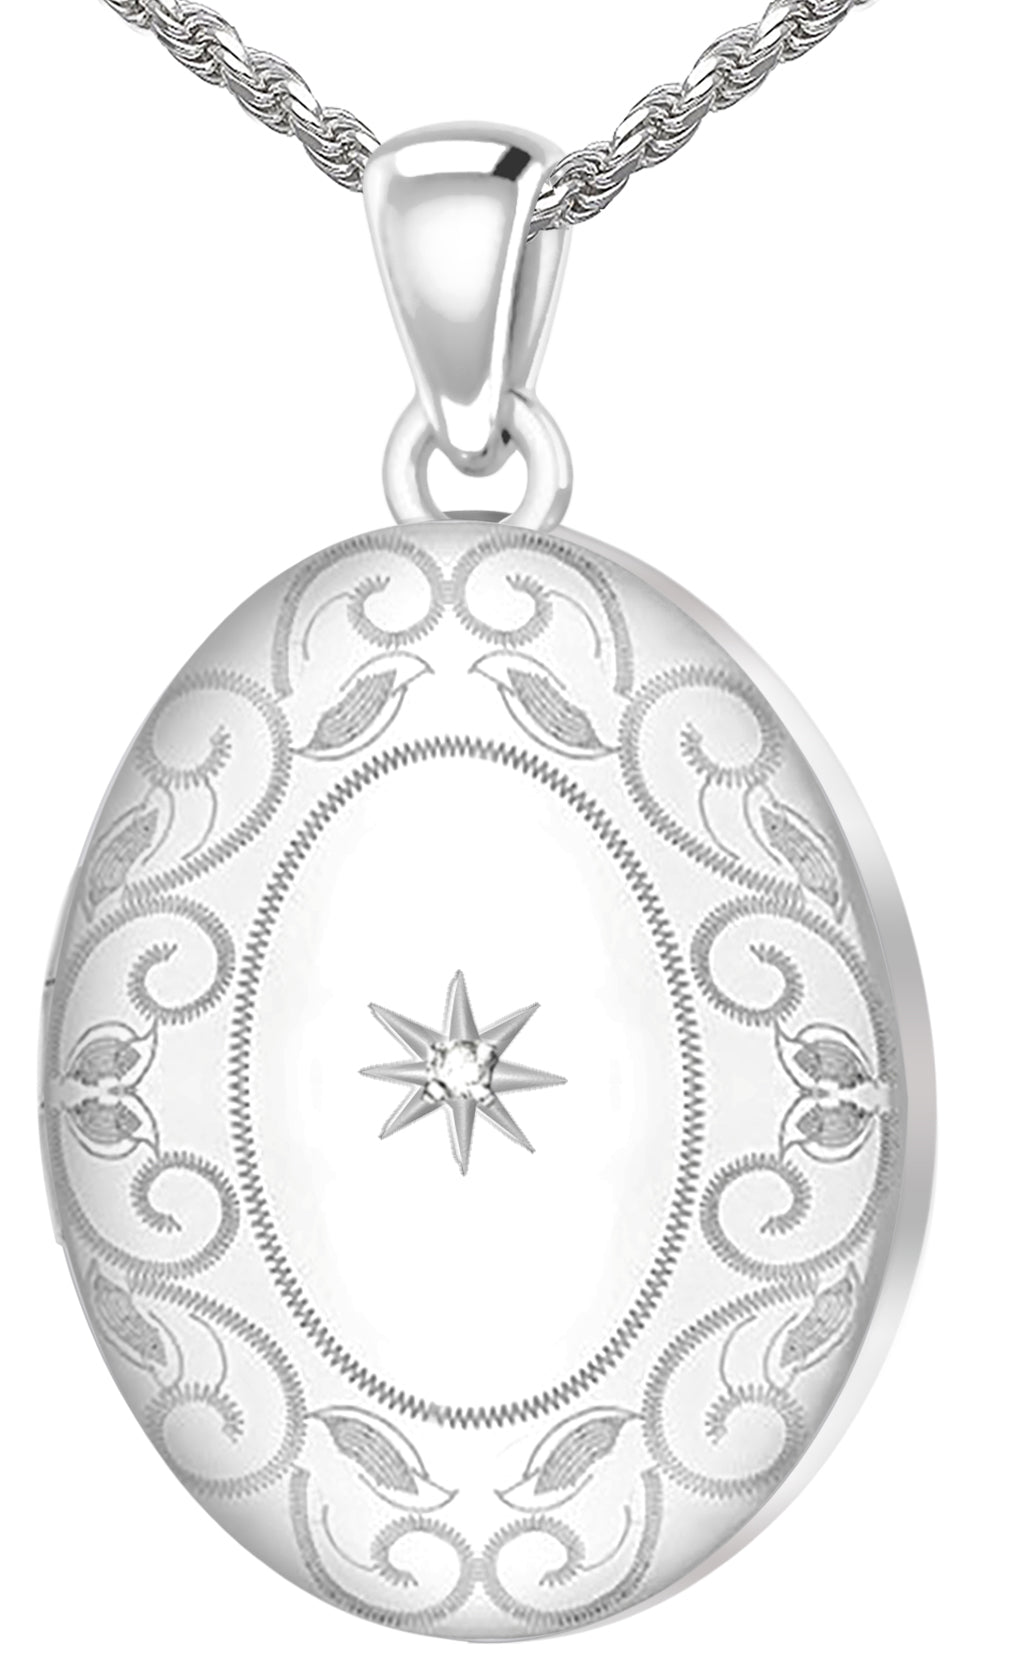 Diamond Necklace - Oval Locket In 2 Photo & Swirl Border